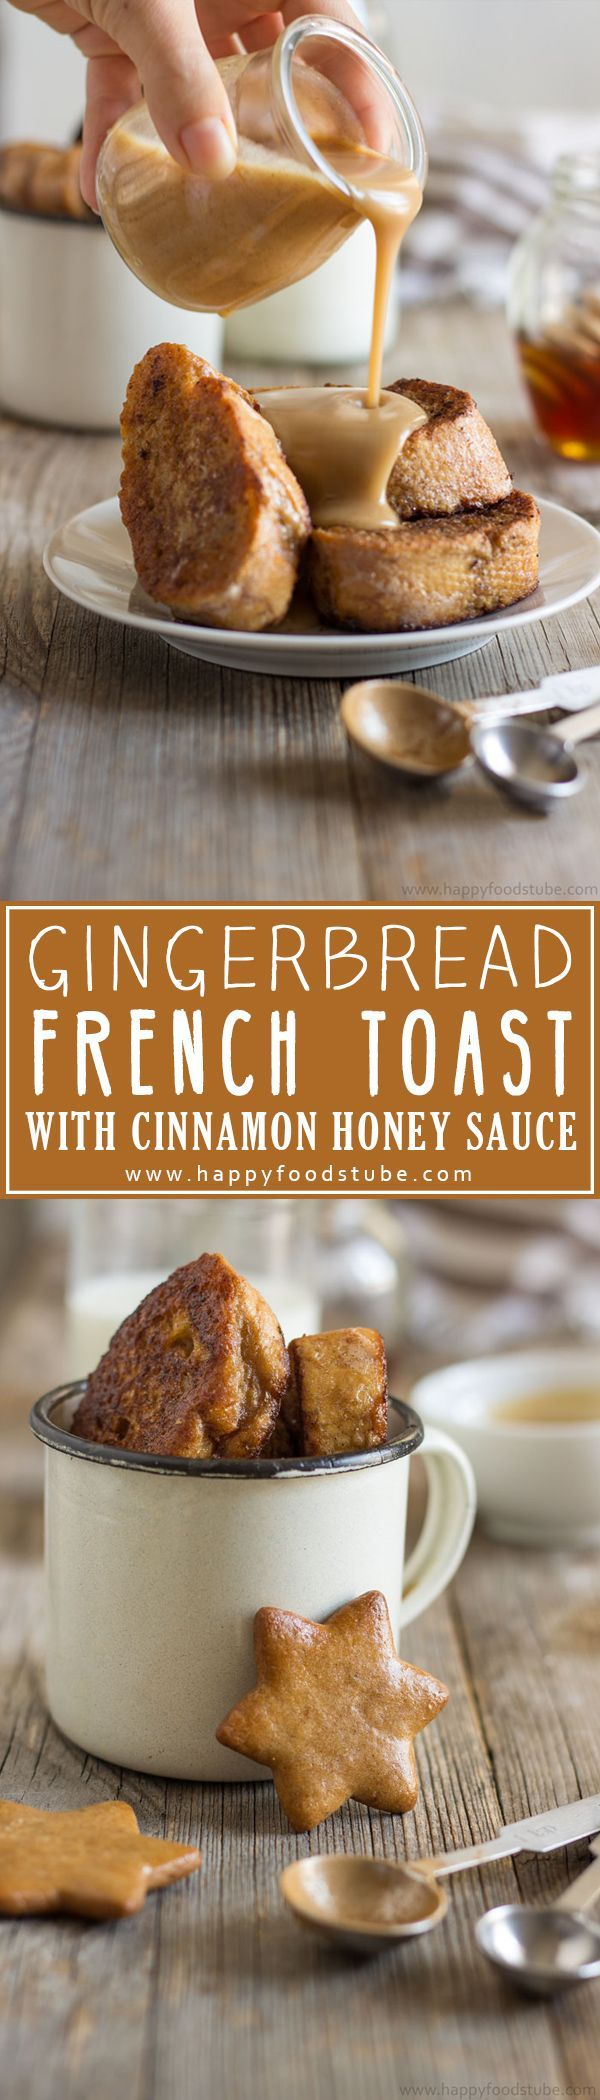 Gingerbread French Toast with Cinnamon Honey Sauce Recipe. A great breakfast-in-bed or brunch recipe with a hint of Christmas & mouth-watering sauce! | http://happyfoodstube.com